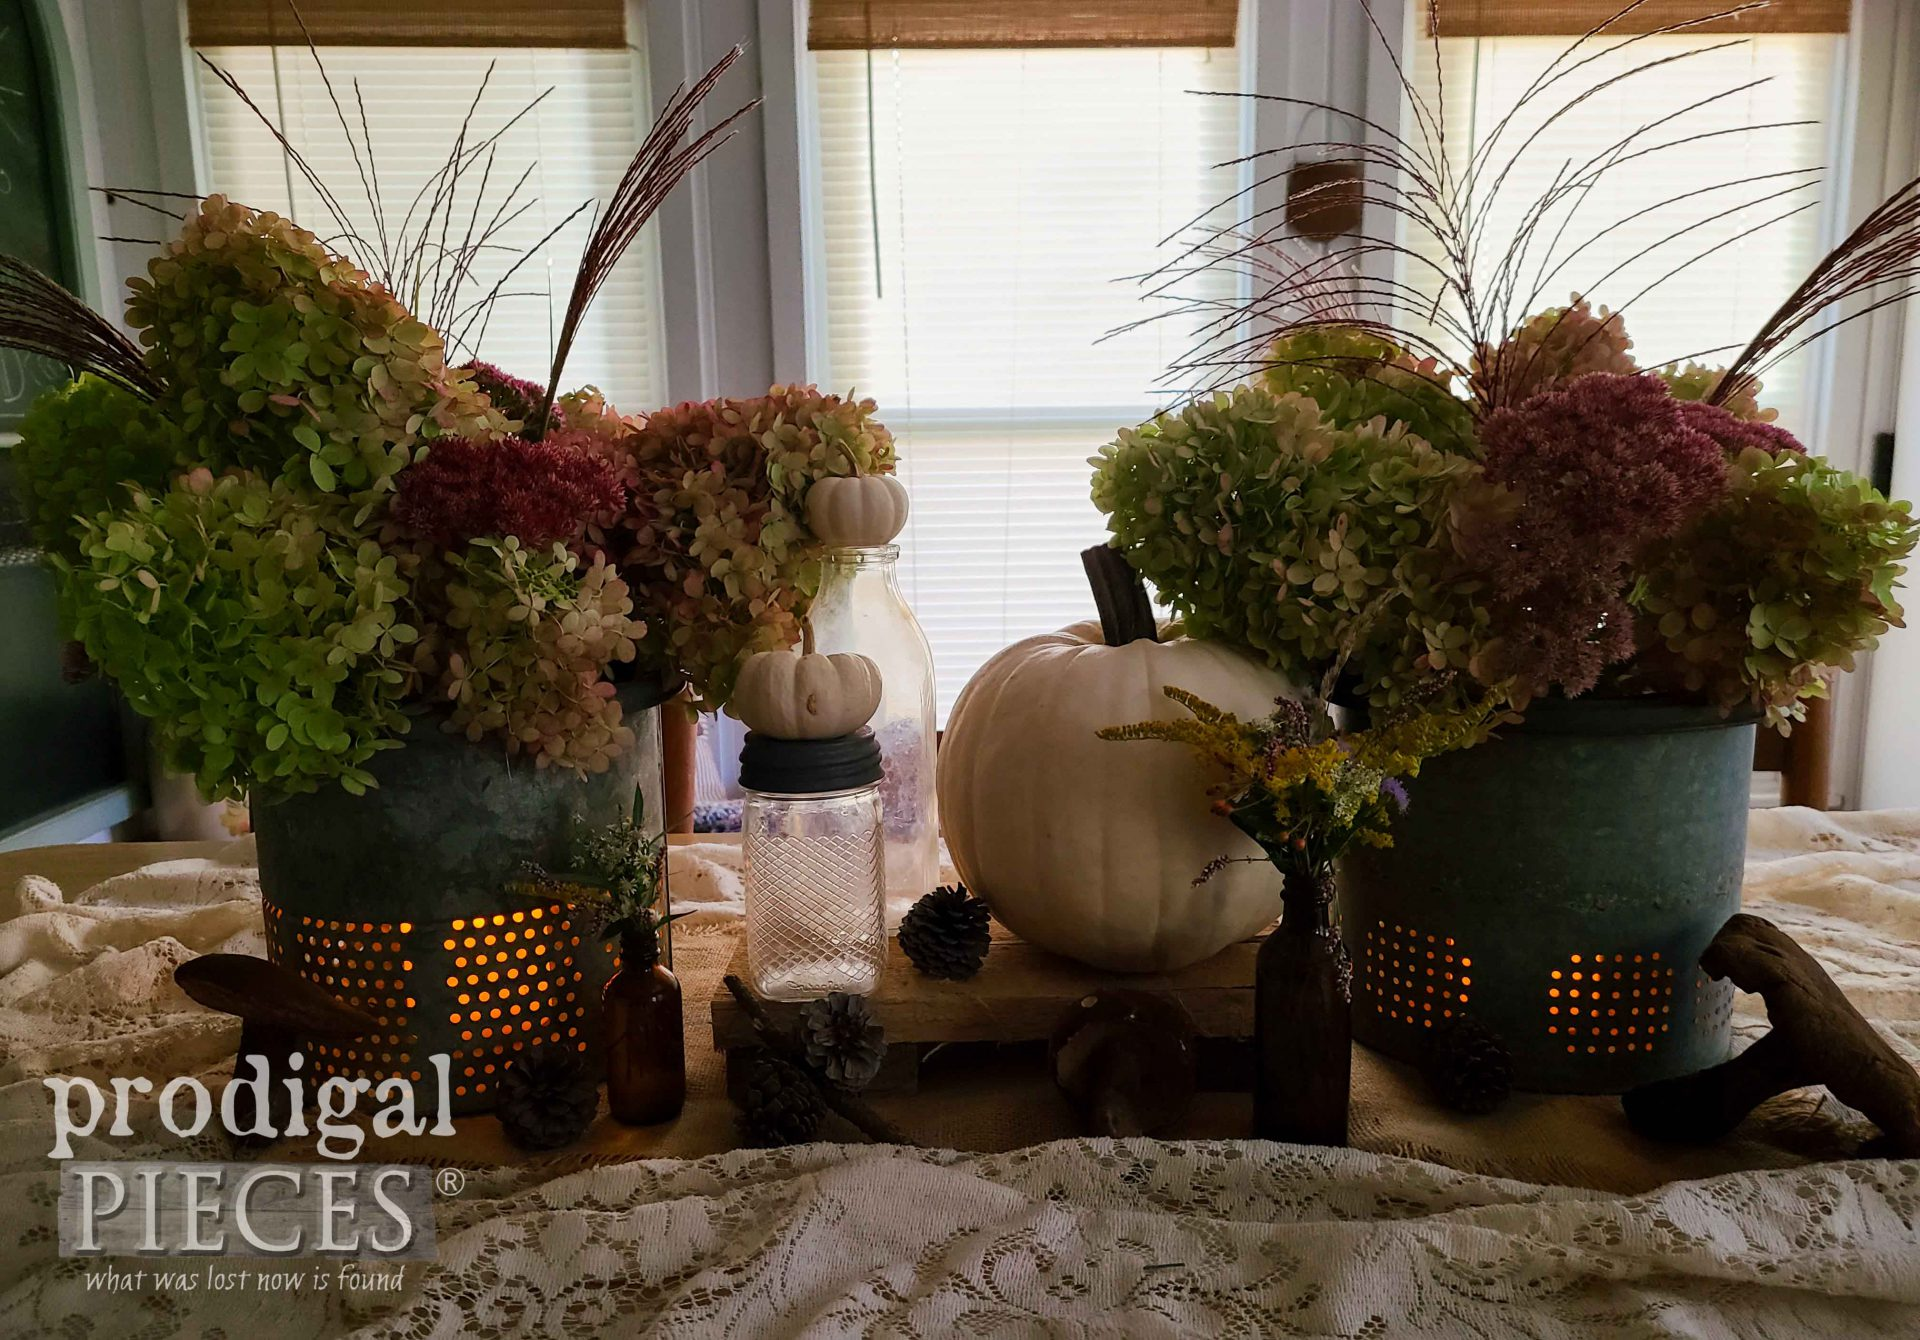 Minnow Bucket Lantern for Farmhouse Fall Tablescape by Larissa of Prodigal Pieces | prodigalpieces.com #prodigalpieces #farmhouse #upcycled #vintage #diy